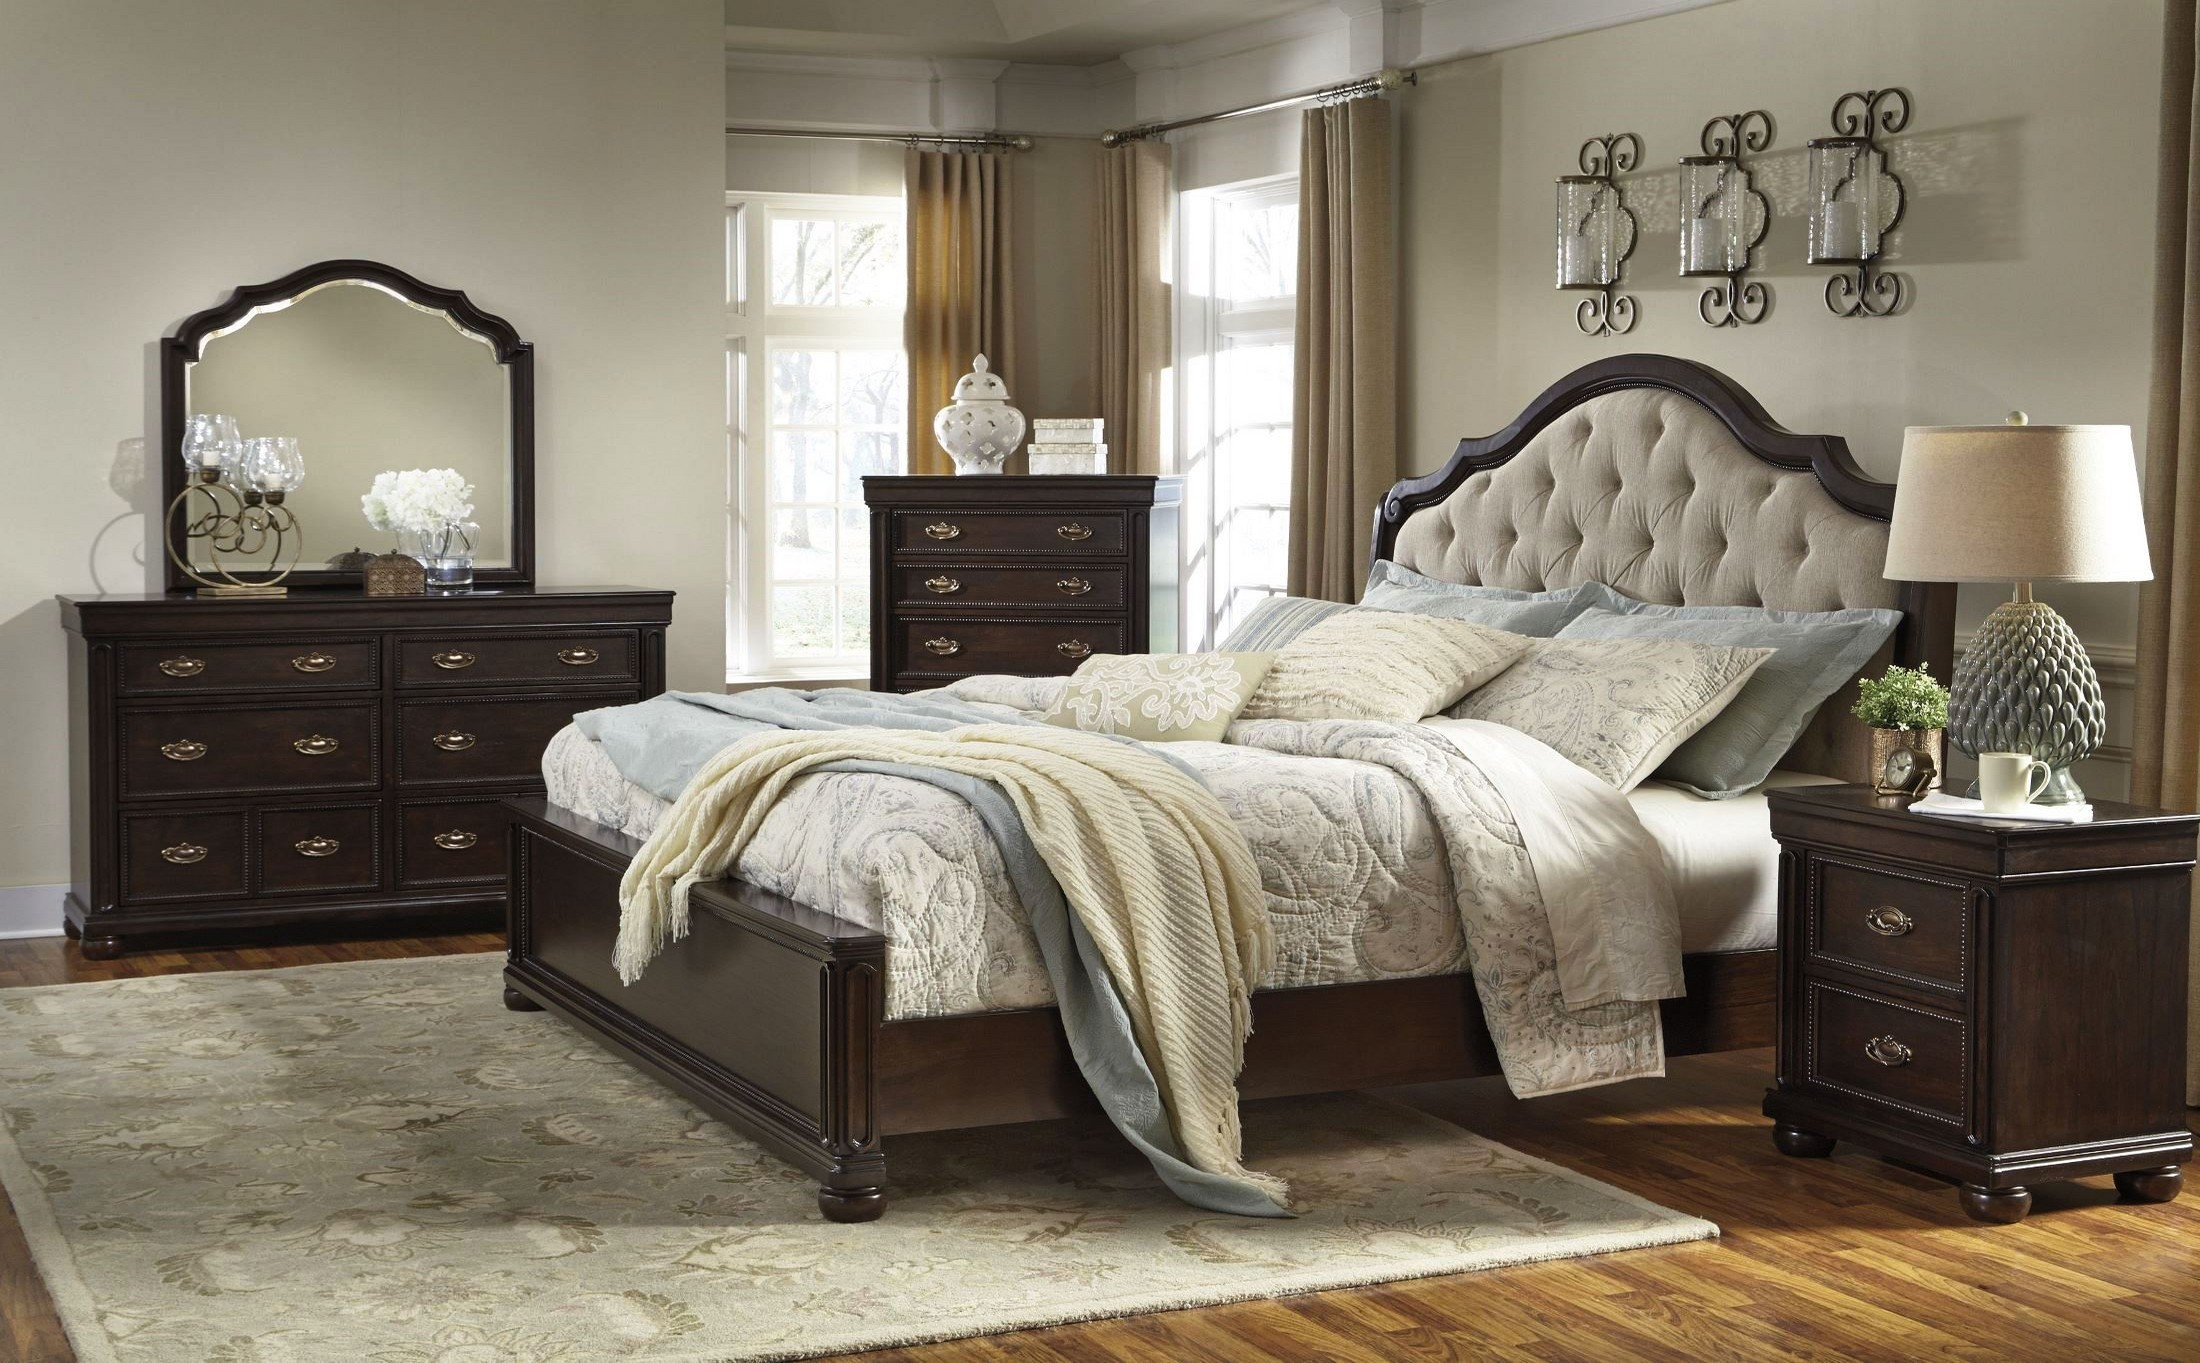 Moluxy Dark Brown Upholstered Sleigh Bedroom Set, B596-54-57-96 ...